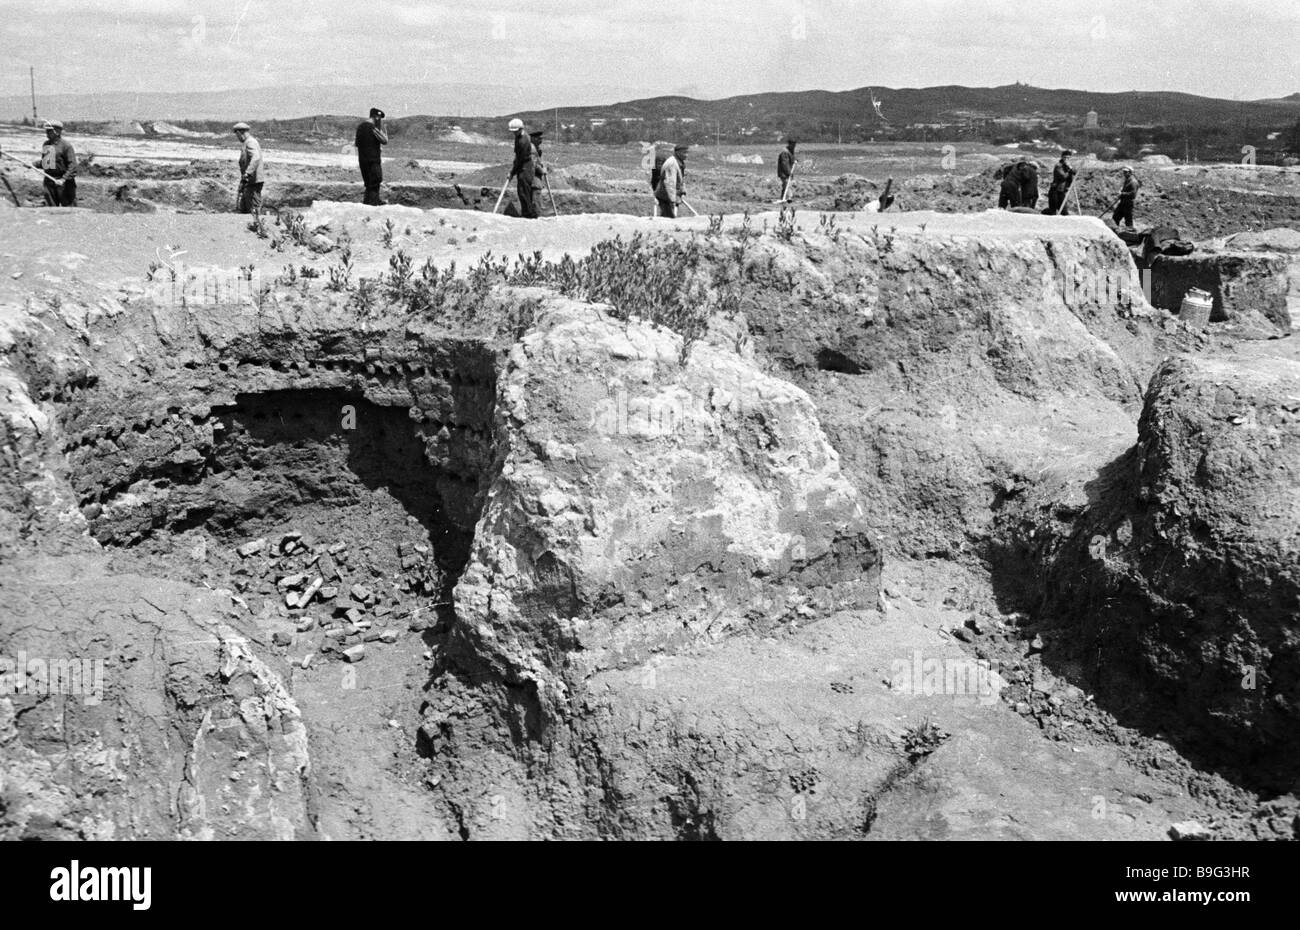 A group of researchers from the Institute of Archaeology of the Uzbek Academy of Sciences digging up the site of - Stock Image